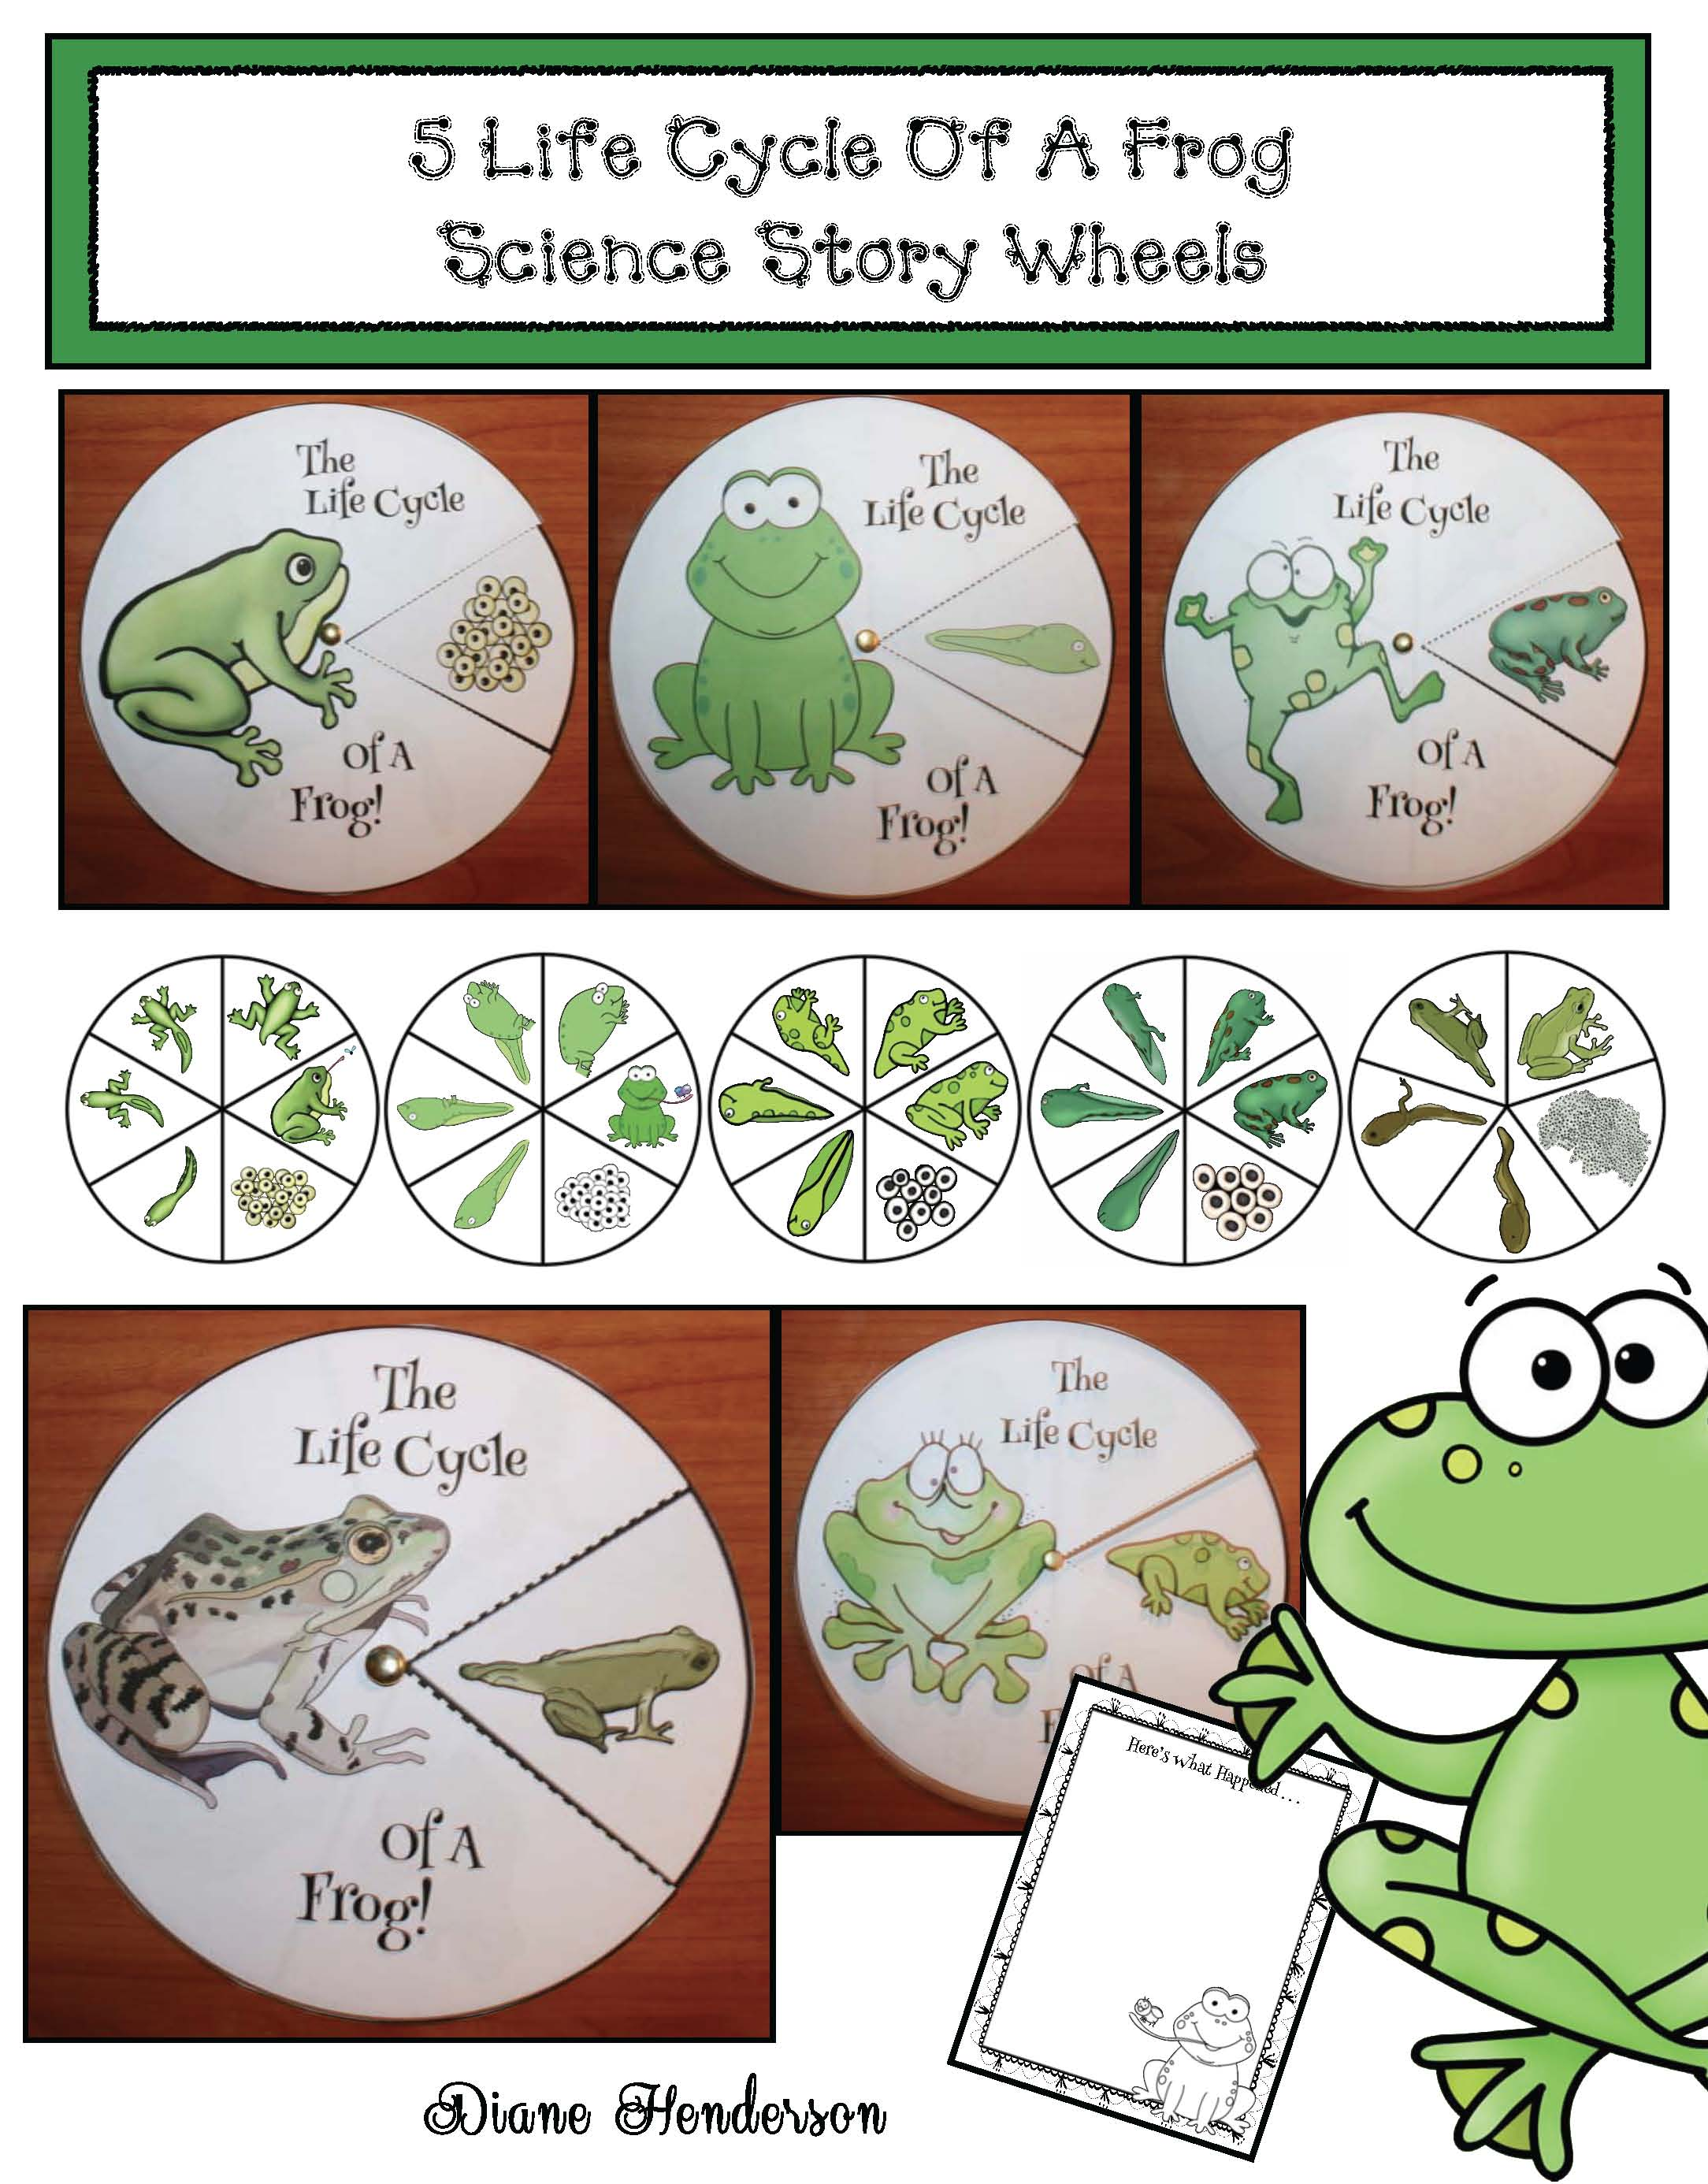 life cycle of a frog crafts, frog crafts, life cycle of a frog activities,